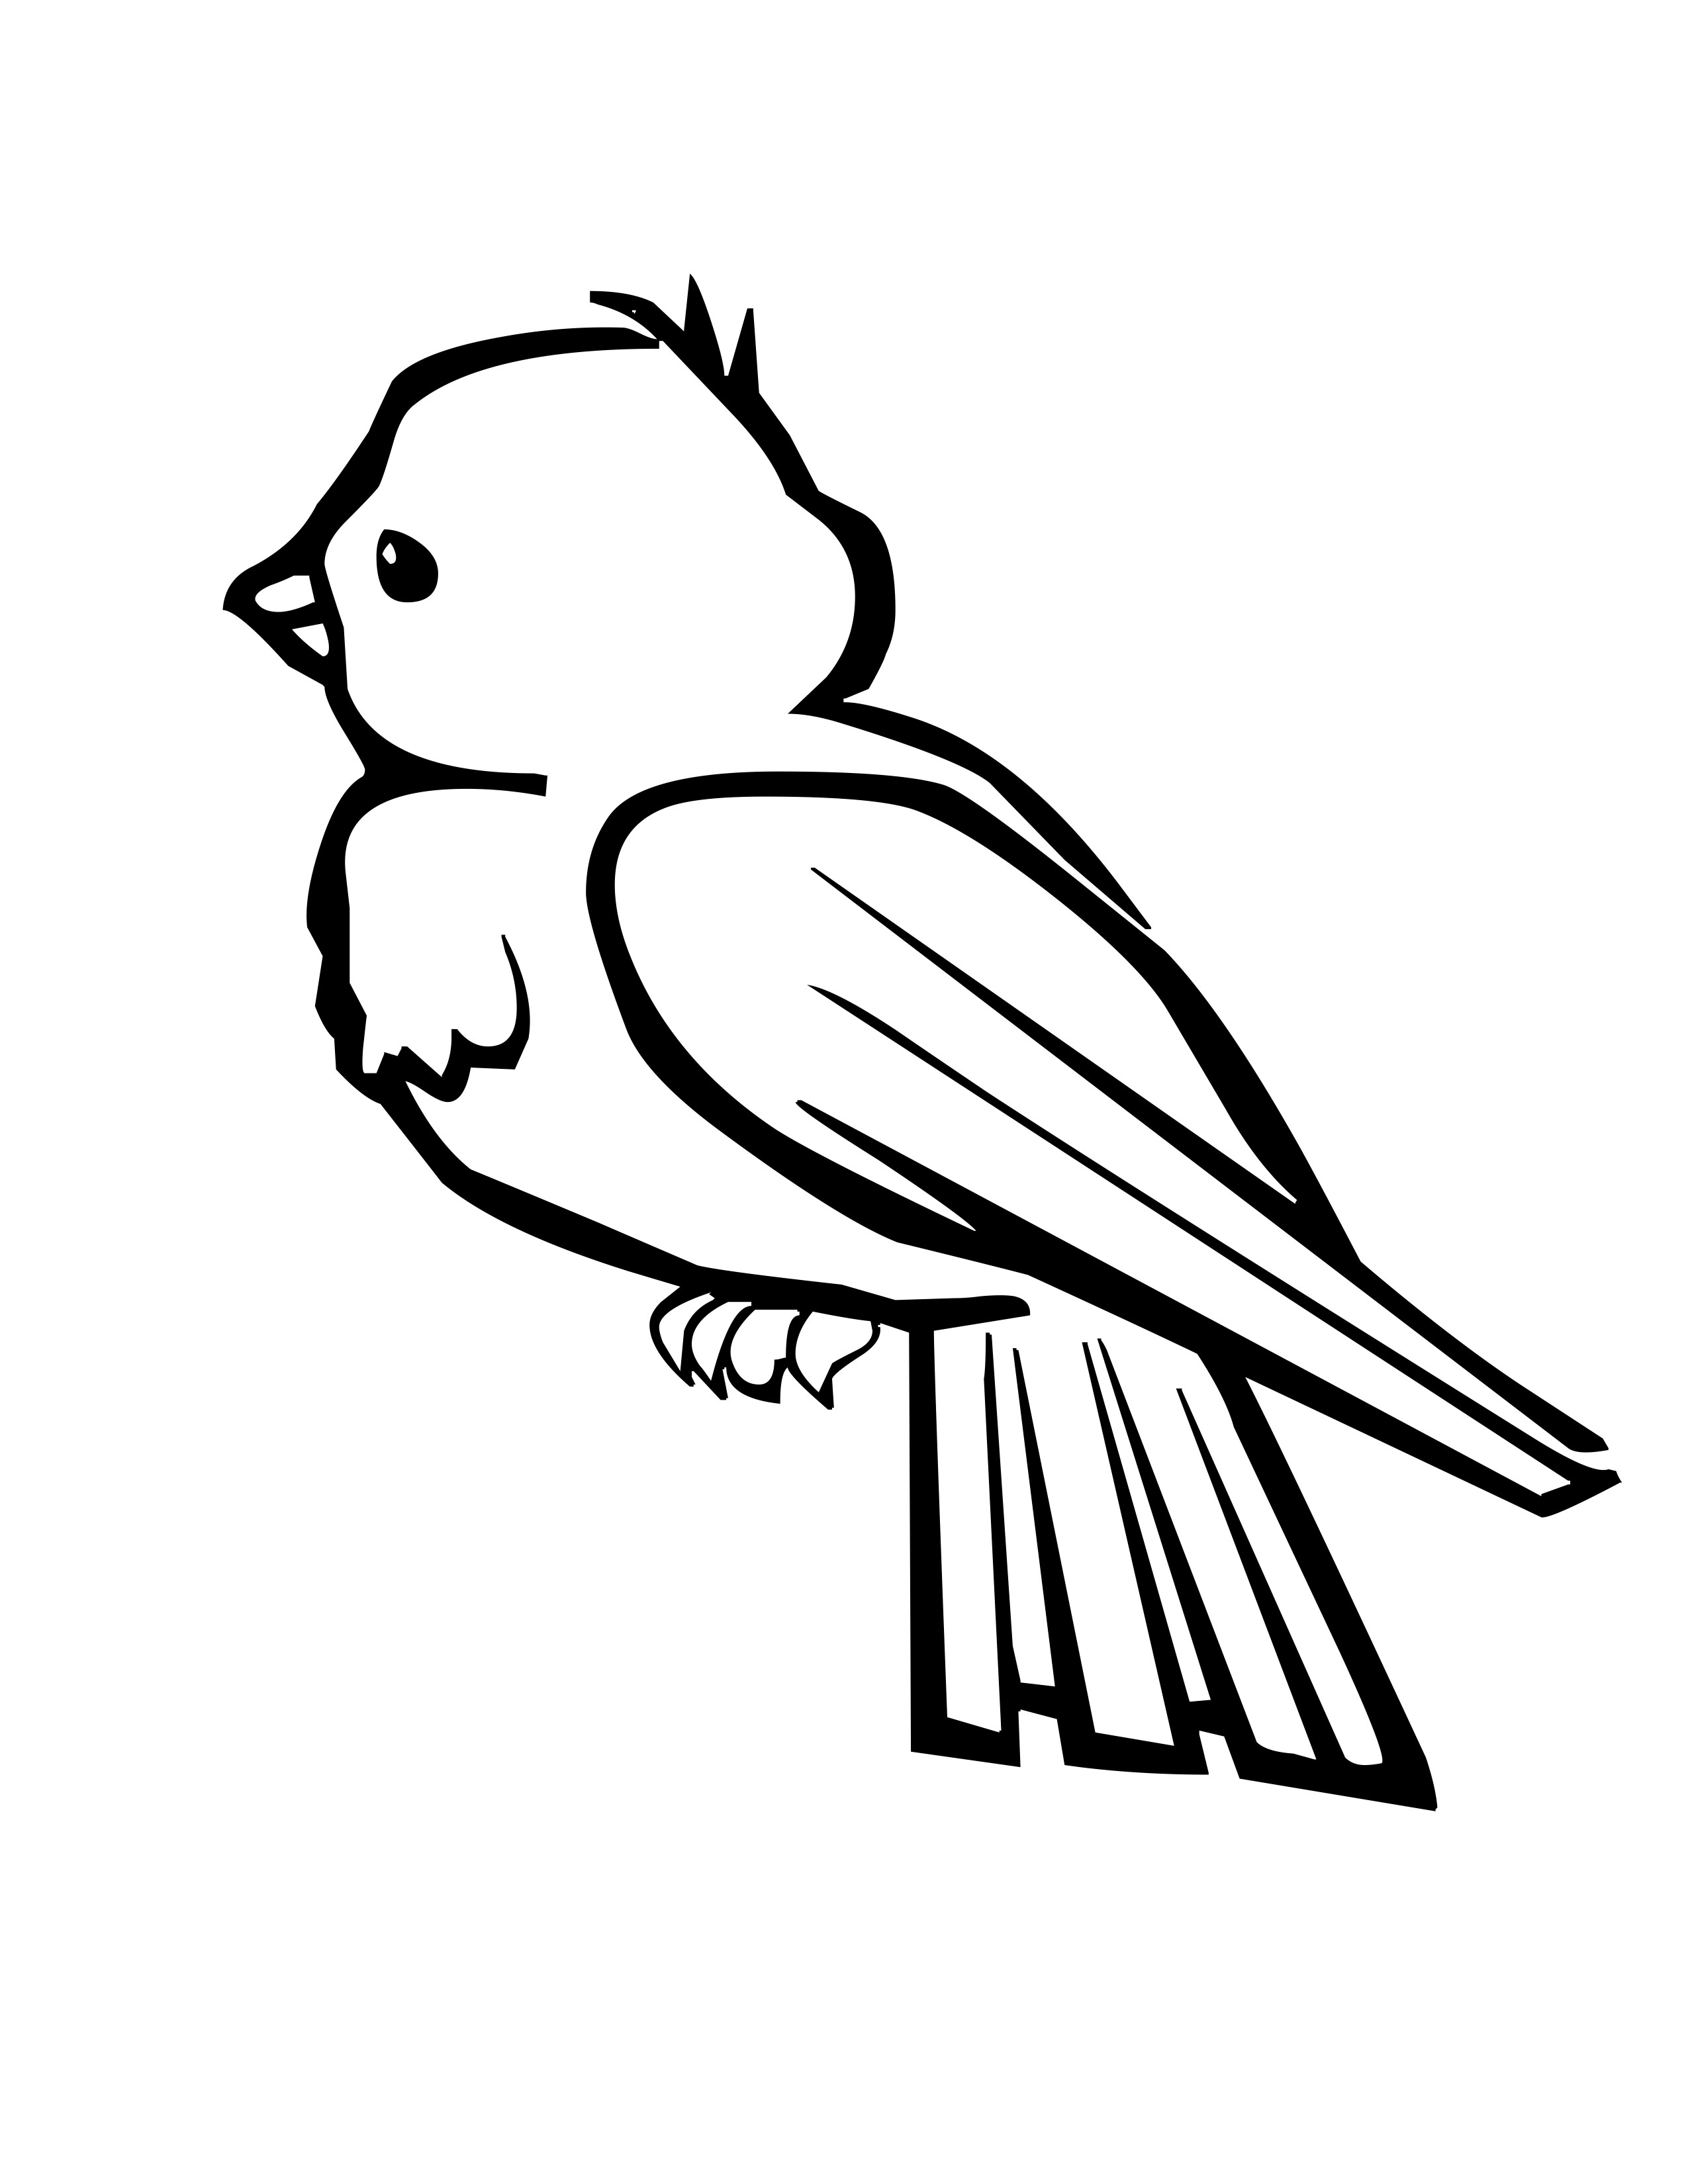 bird colouring pages for kids bird coloring pages kids for pages bird colouring